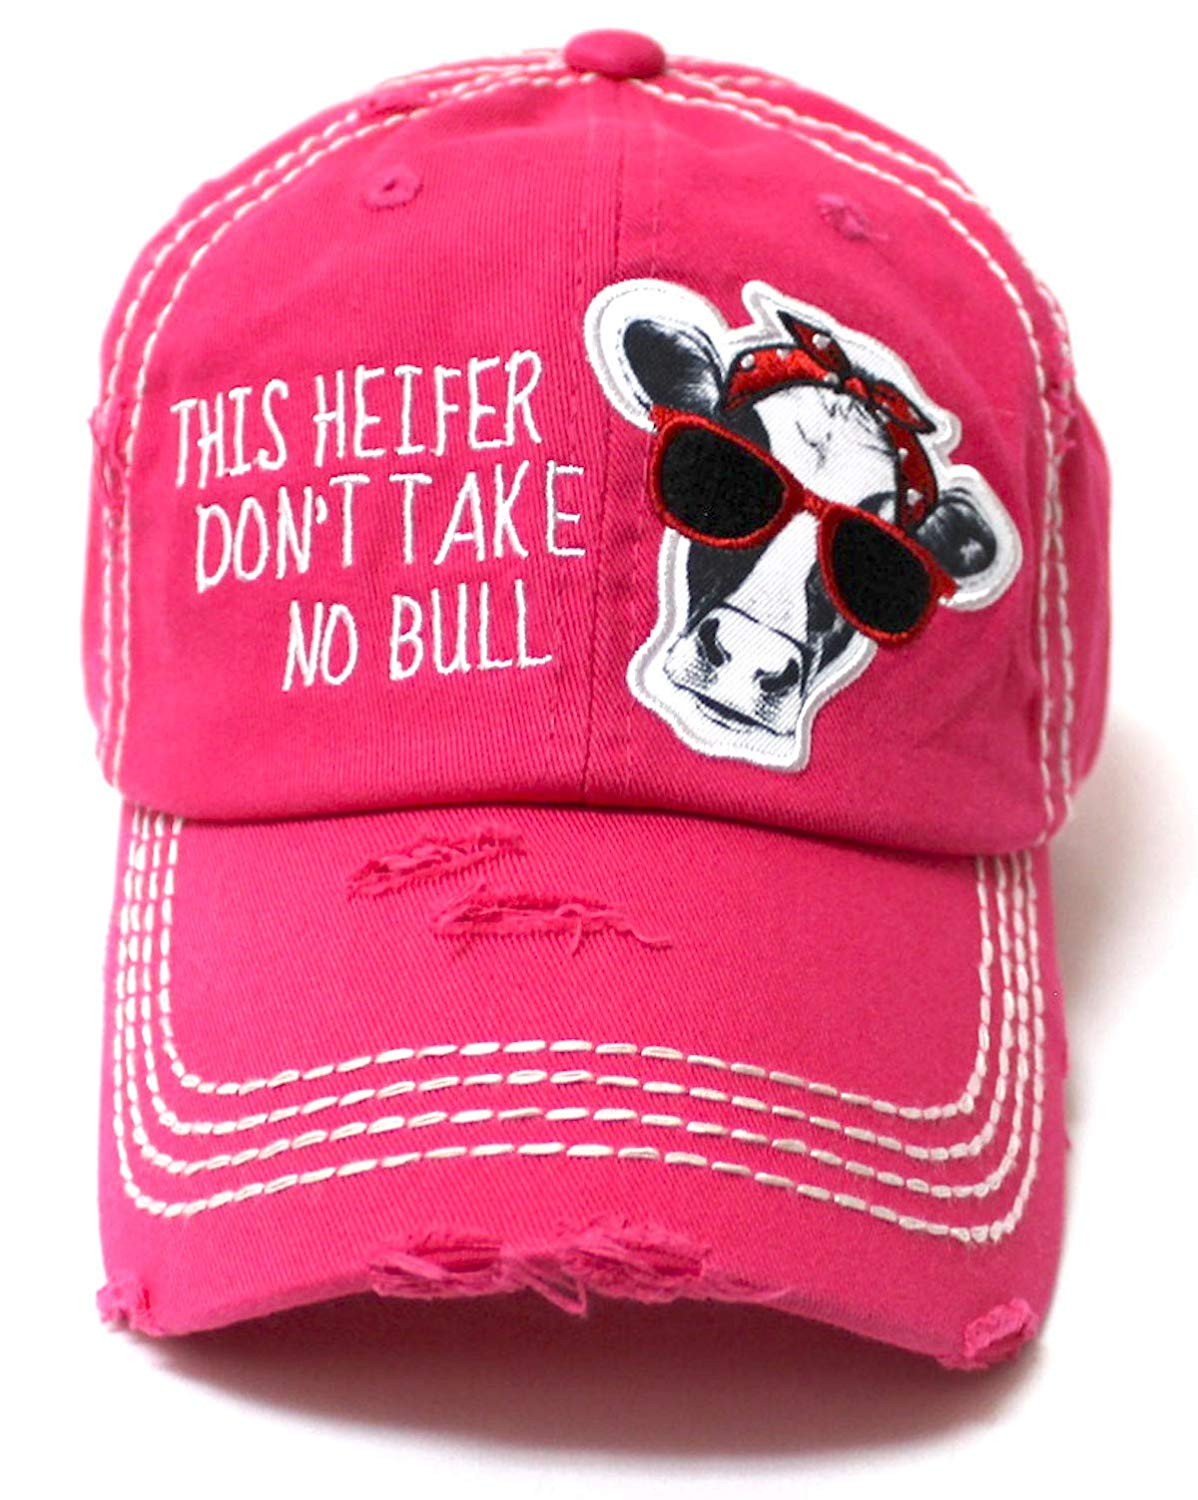 44be151fbc7 Country Humor Cap This Heifer Don t TAKE NO Bull Red Western Bandana Cow  Patch